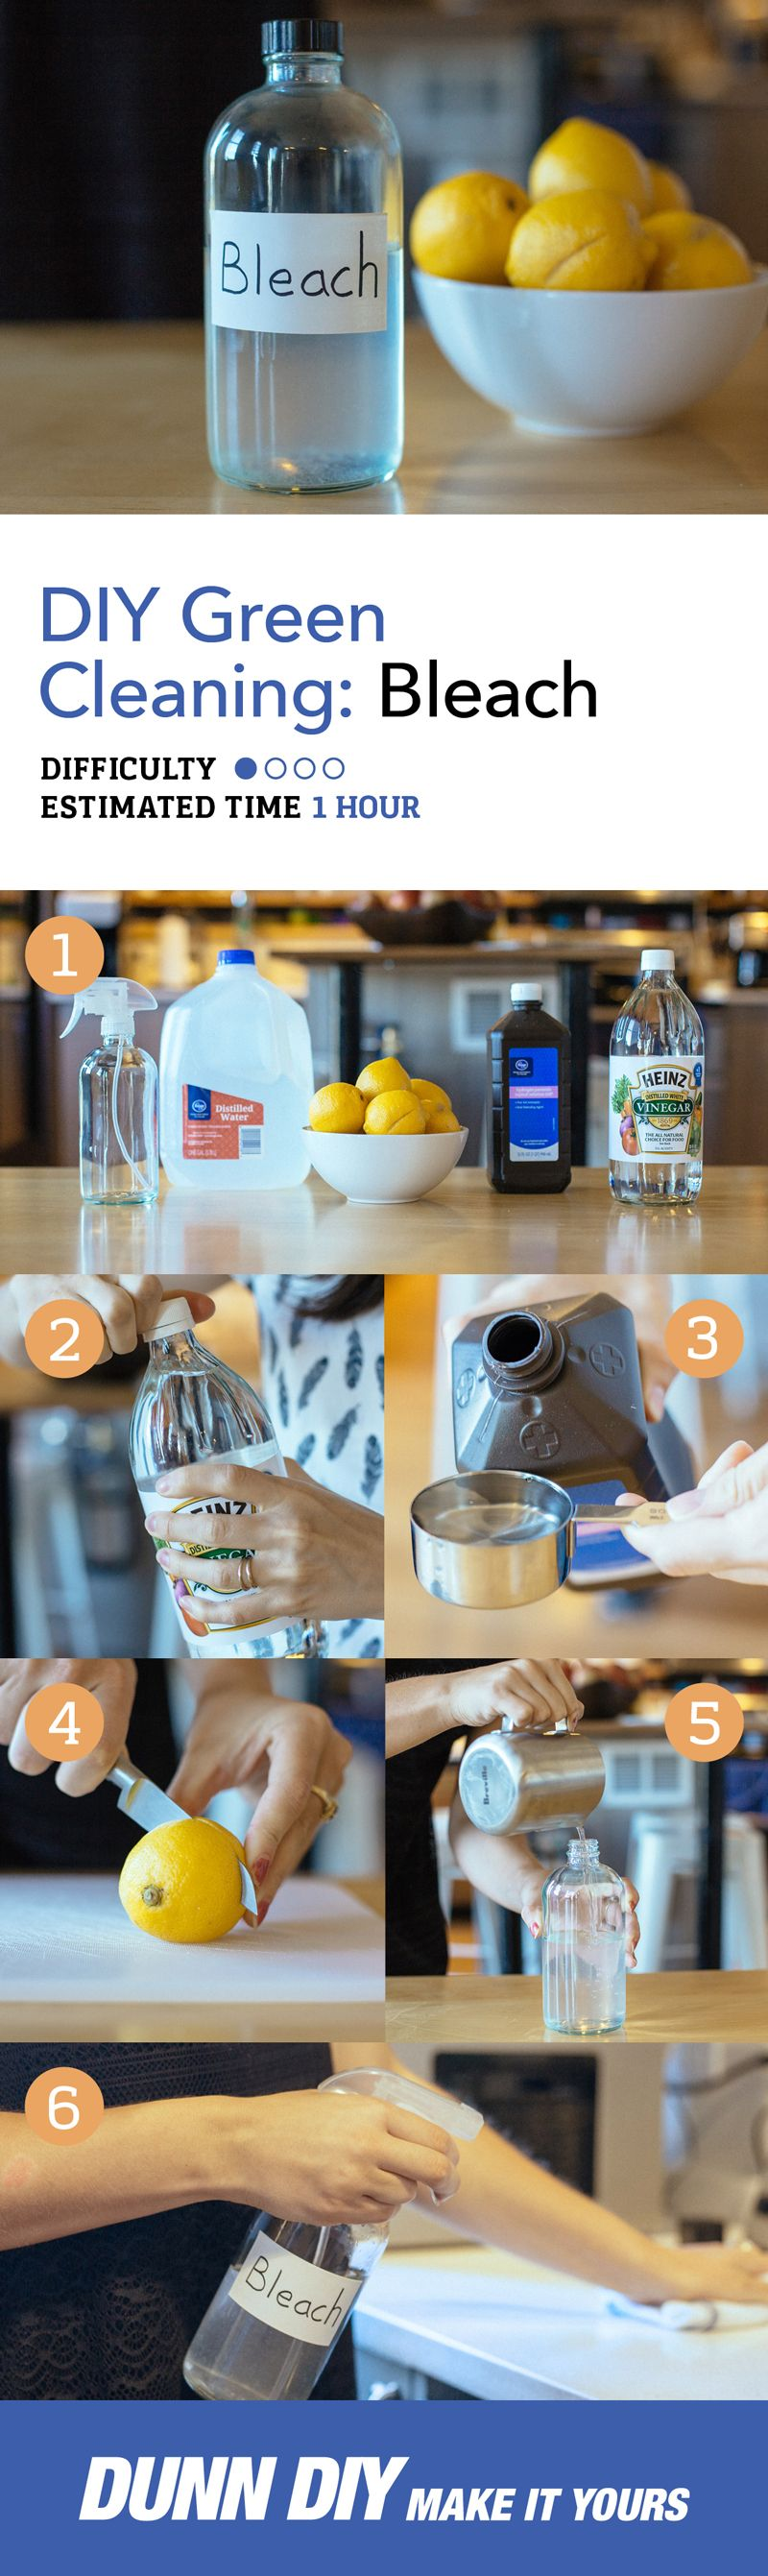 DIY Bleach Cleaner How To Make Homemade Bleach Cleaner